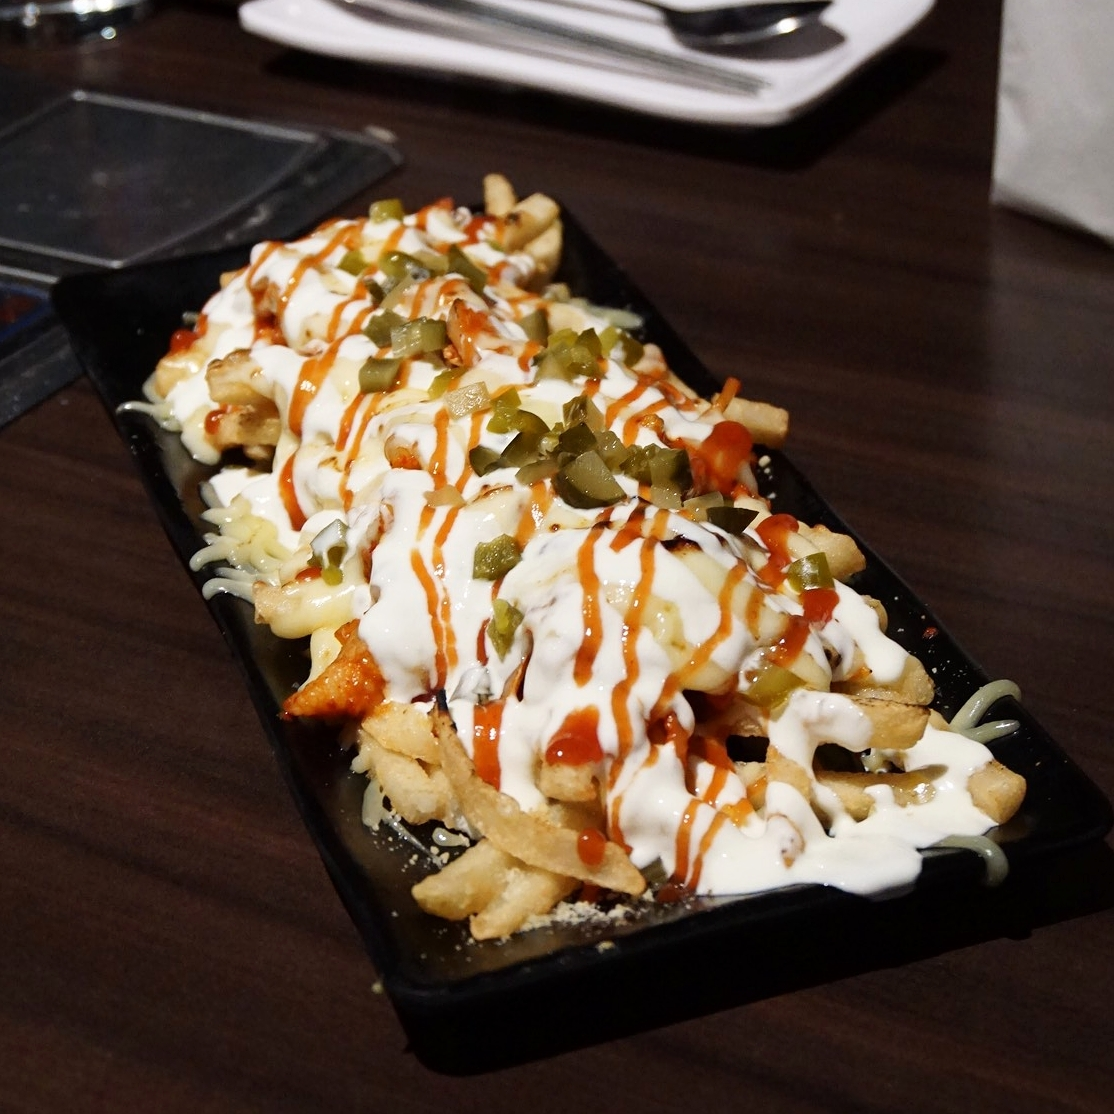 Kimcheese Pork Bulgogi Fries - $20